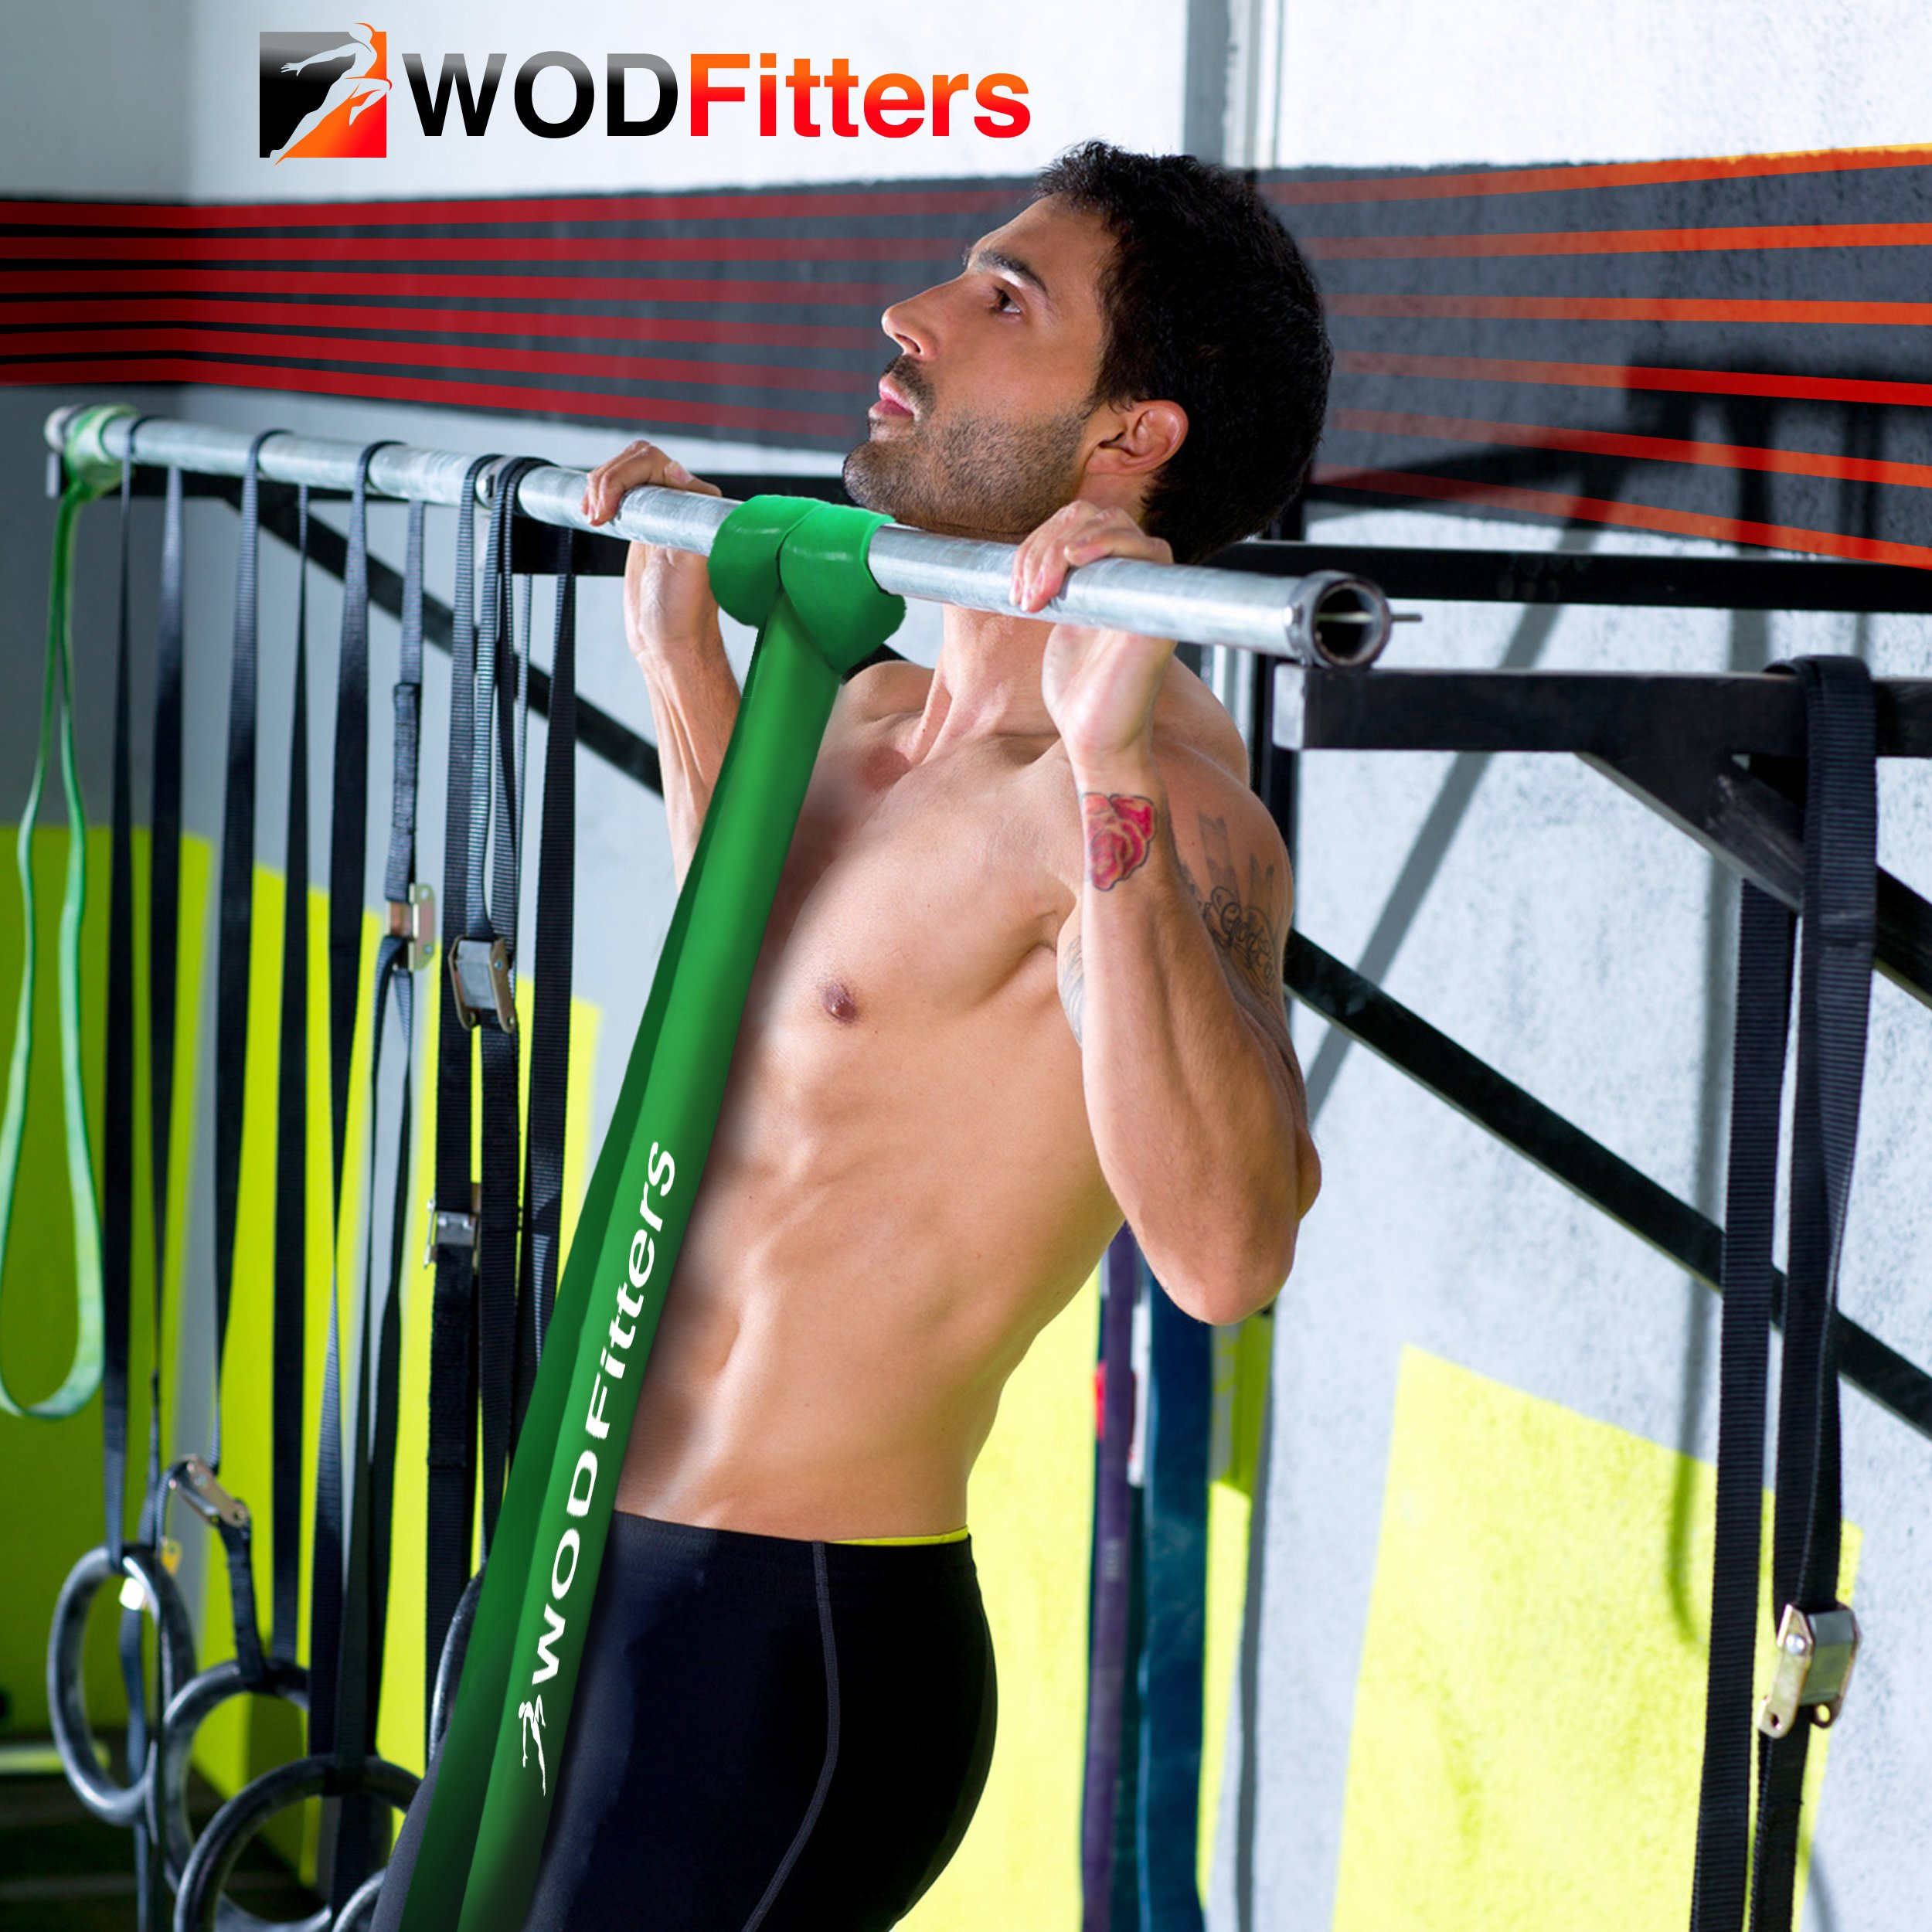 WODFitters Stretch Resistance Pull Up Assist Band with eGuide, 5 Blue - 65 to 175 Pounds (2.5'' 4.5mm) by WODFitters (Image #8)